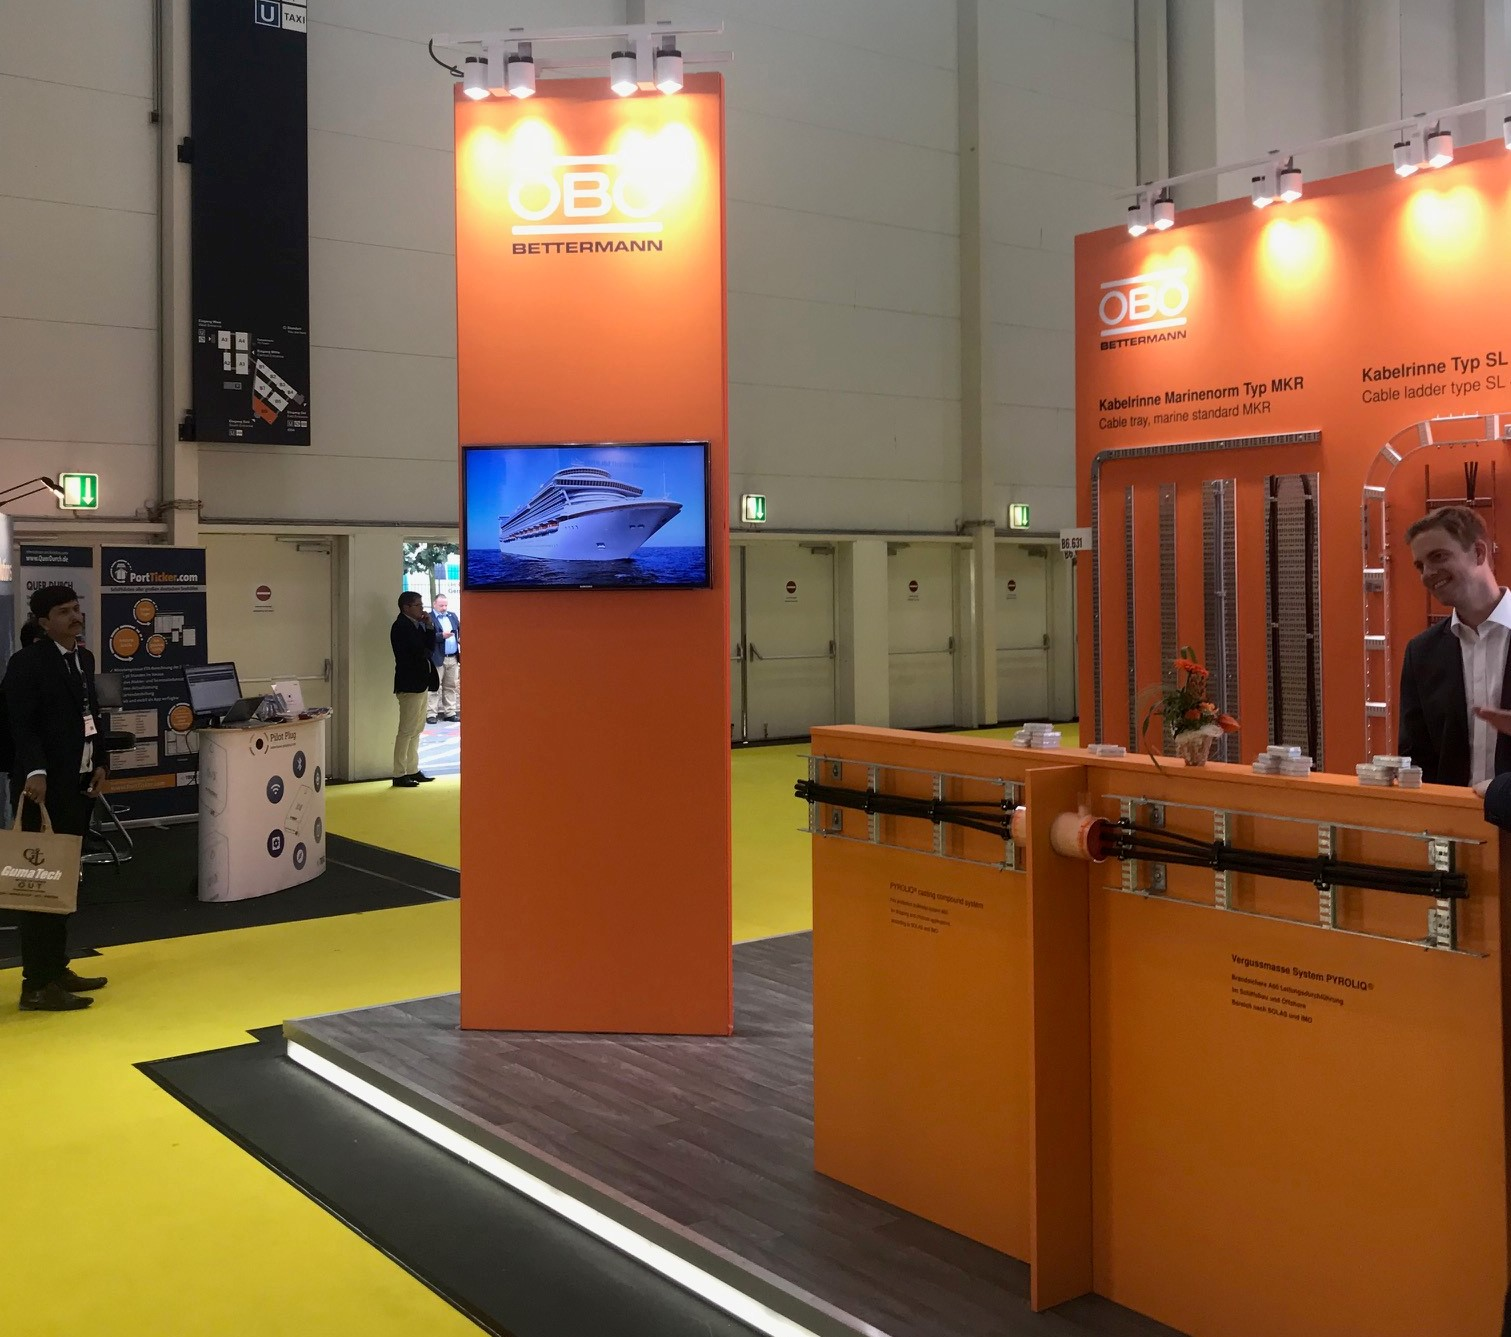 OBO Bettermann Messestand auf der Wind Energy 2018